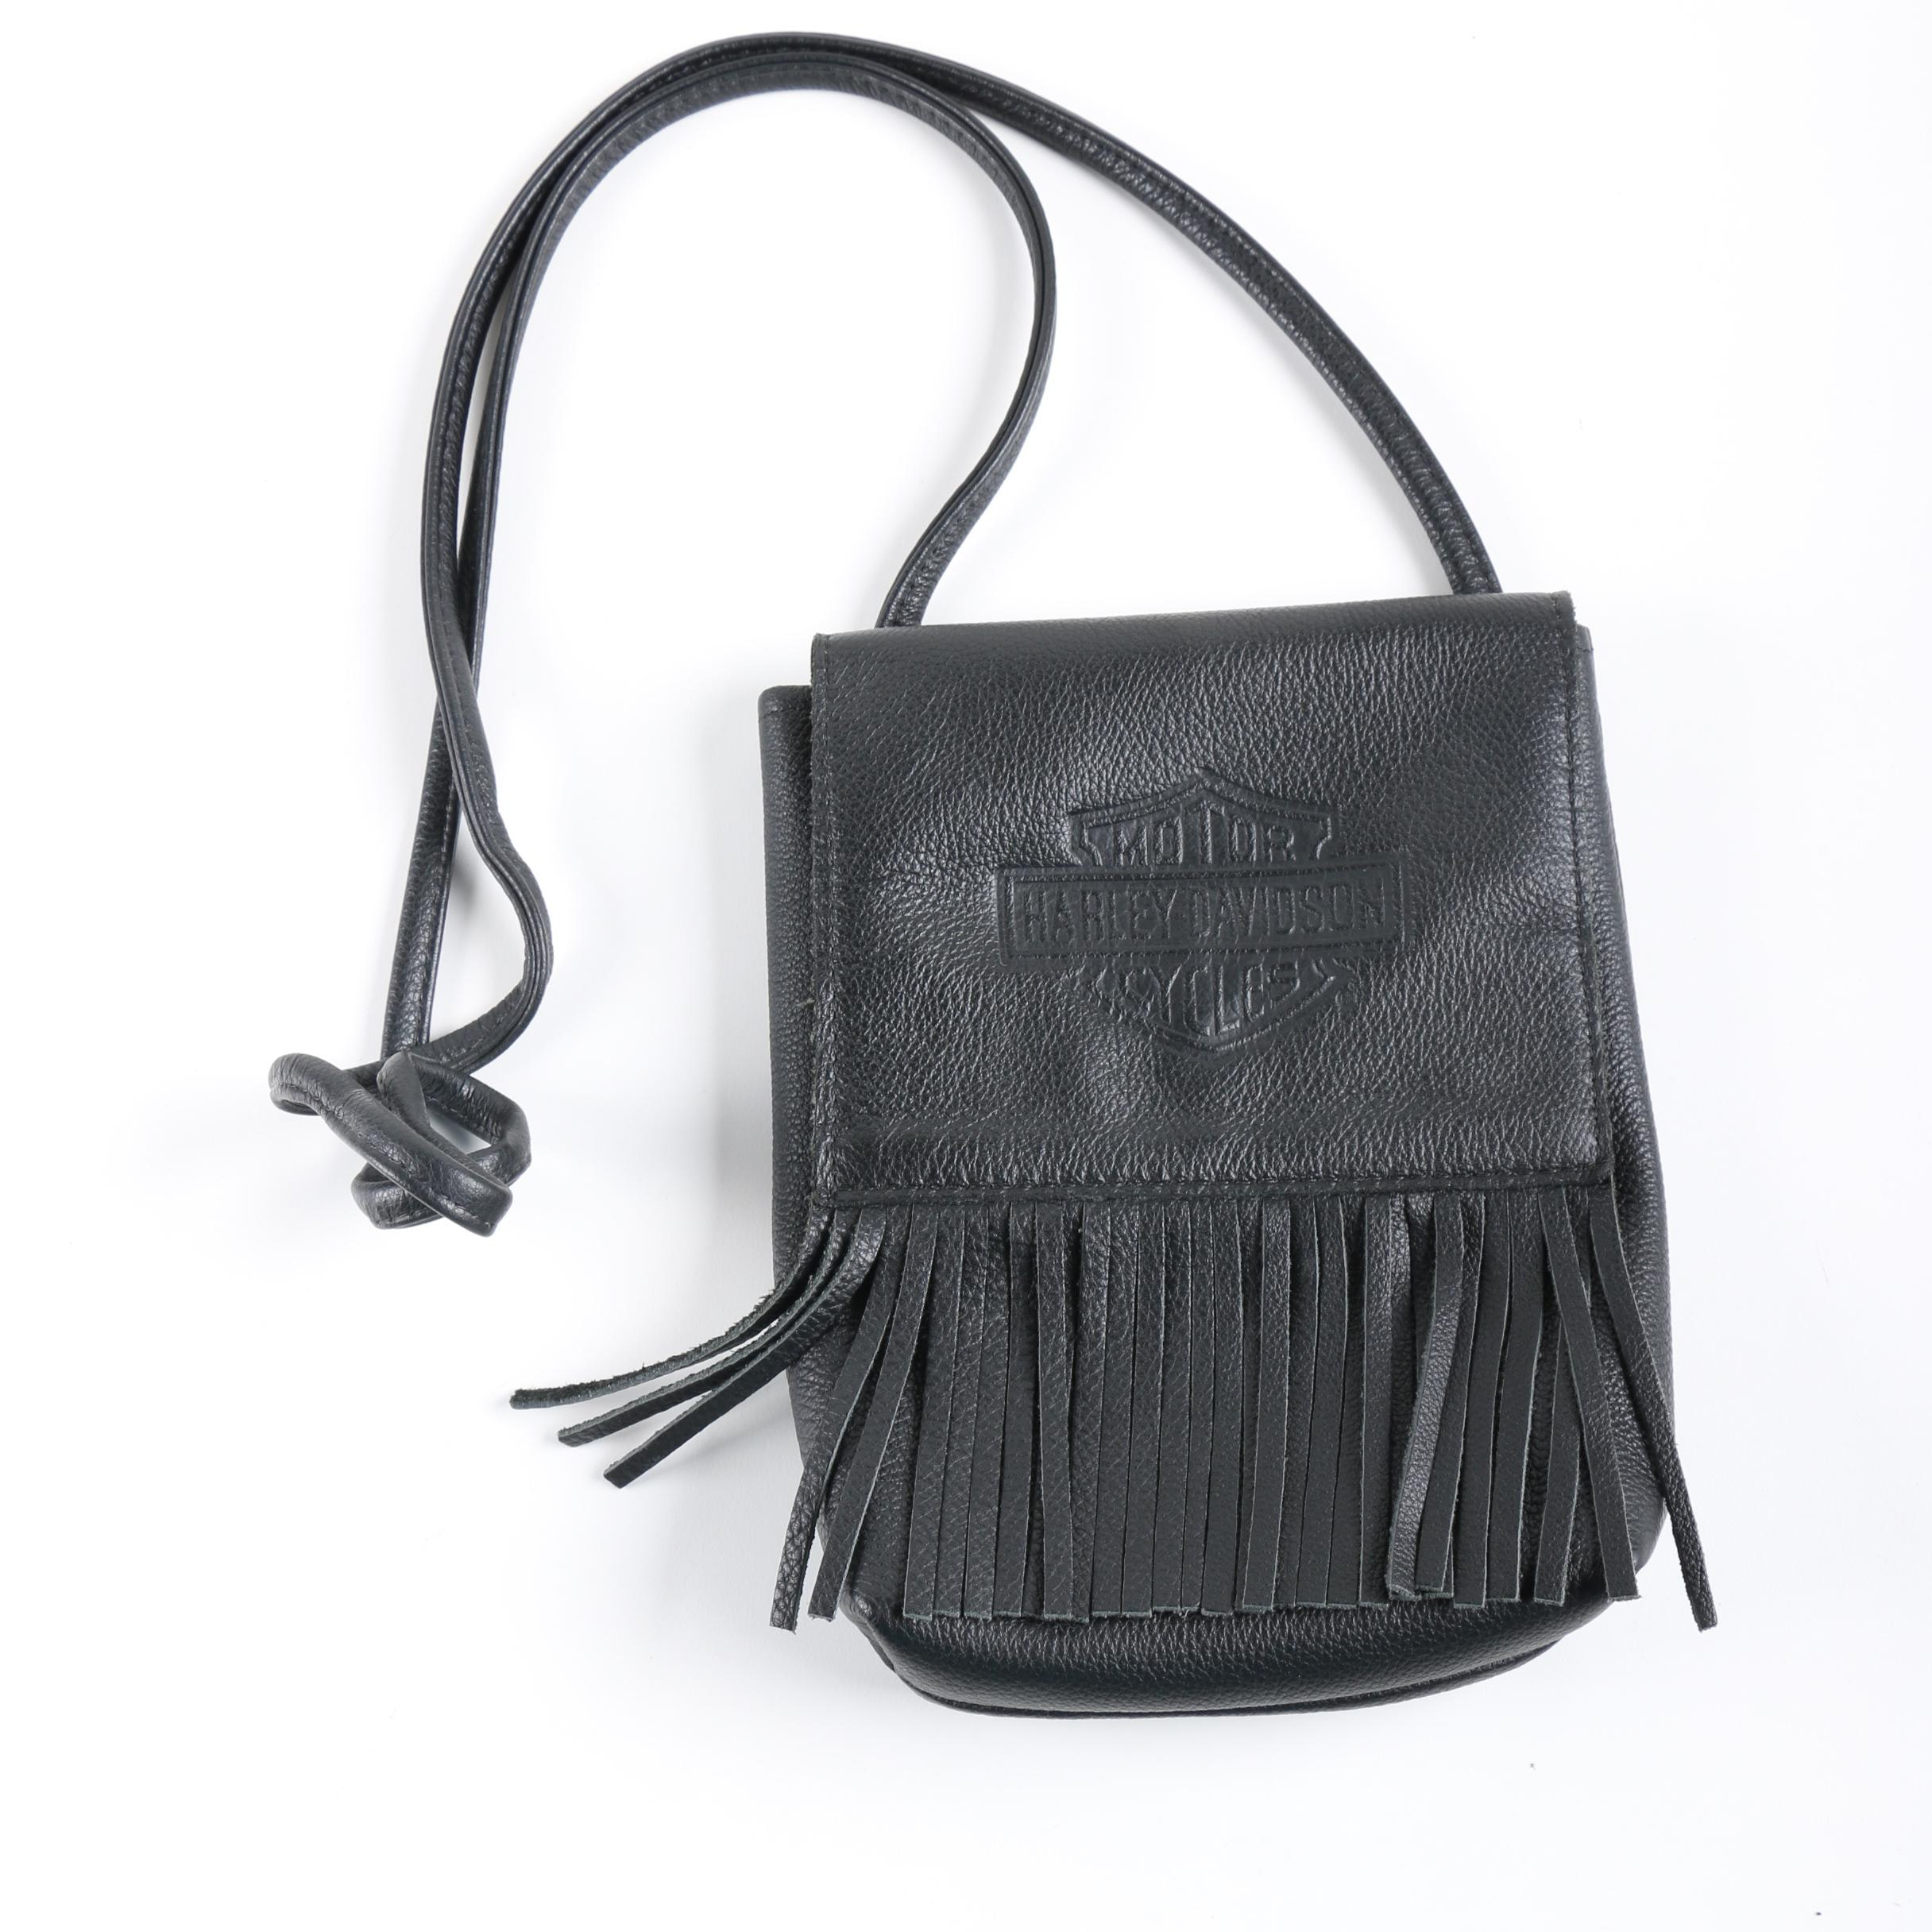 Harley-Davidson Black Leather Cross-body Bag